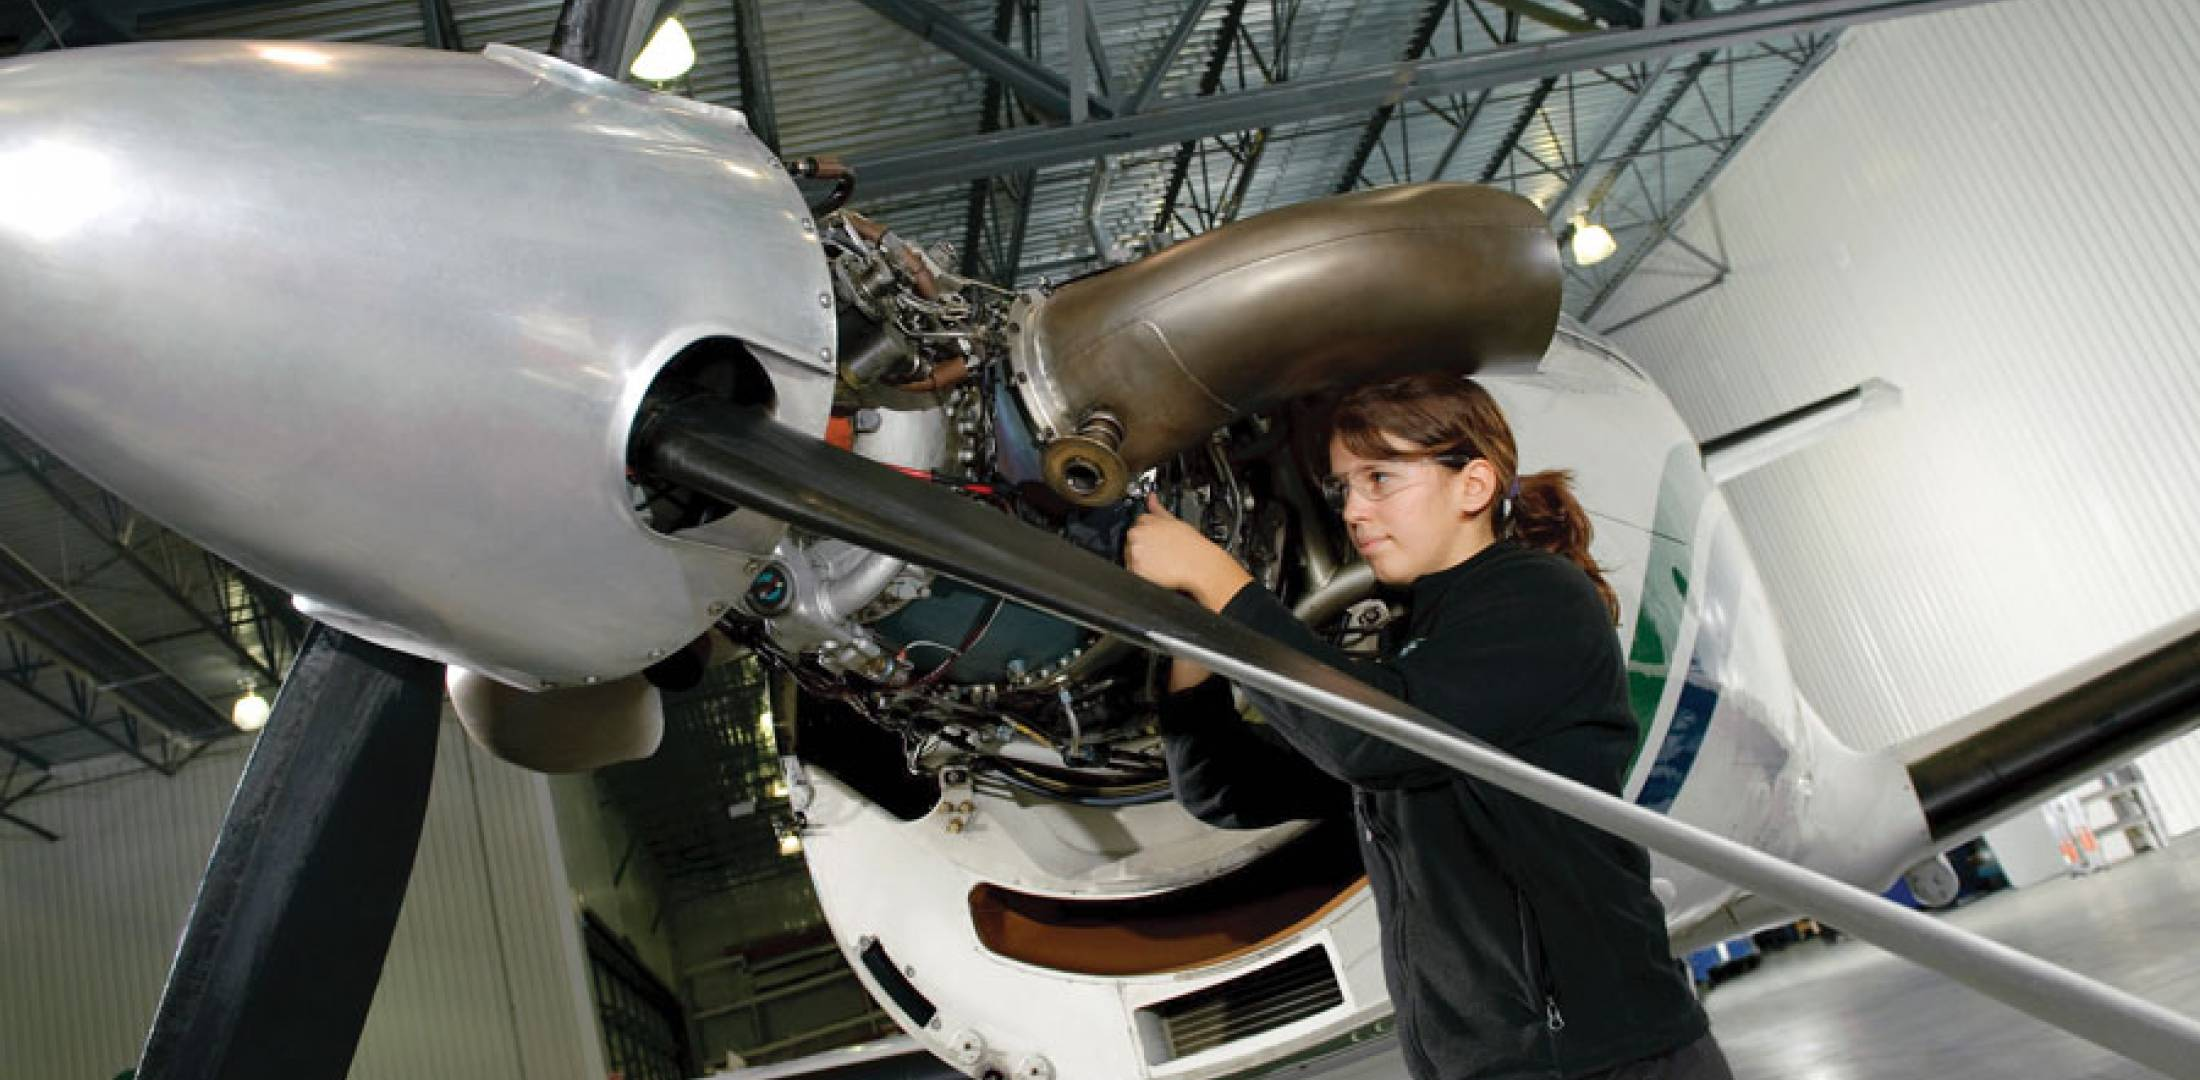 Pratt Prepares To Reboot the PT6 Yet Again with New Technology